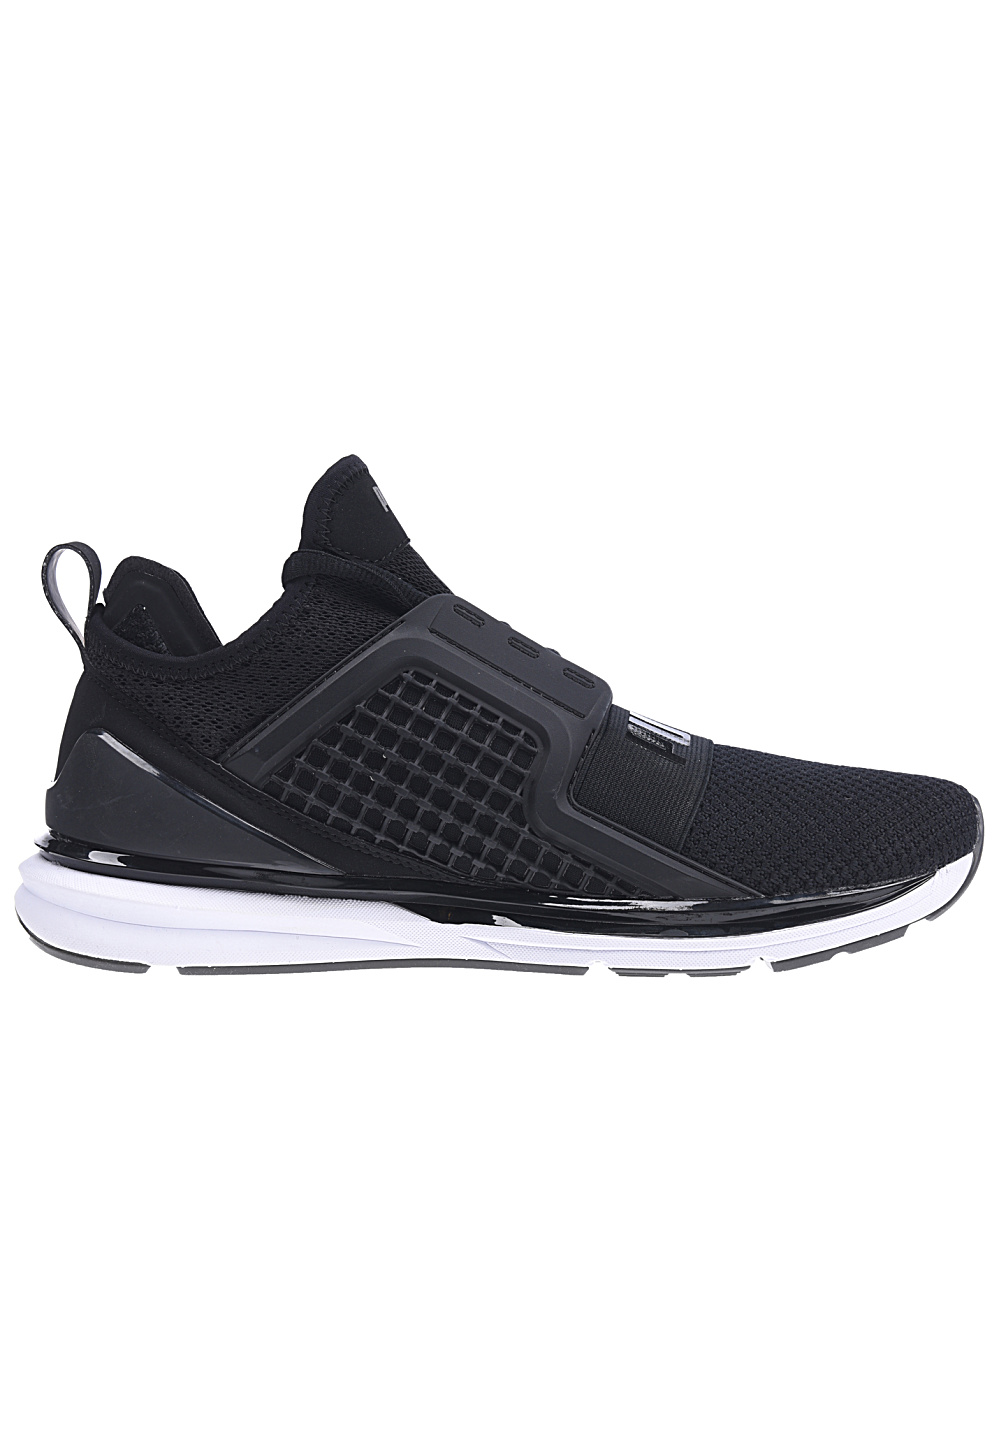 reputable site 83bf6 7ca04 Puma Ignite Limitless Weave - Sneakers for Men - Black